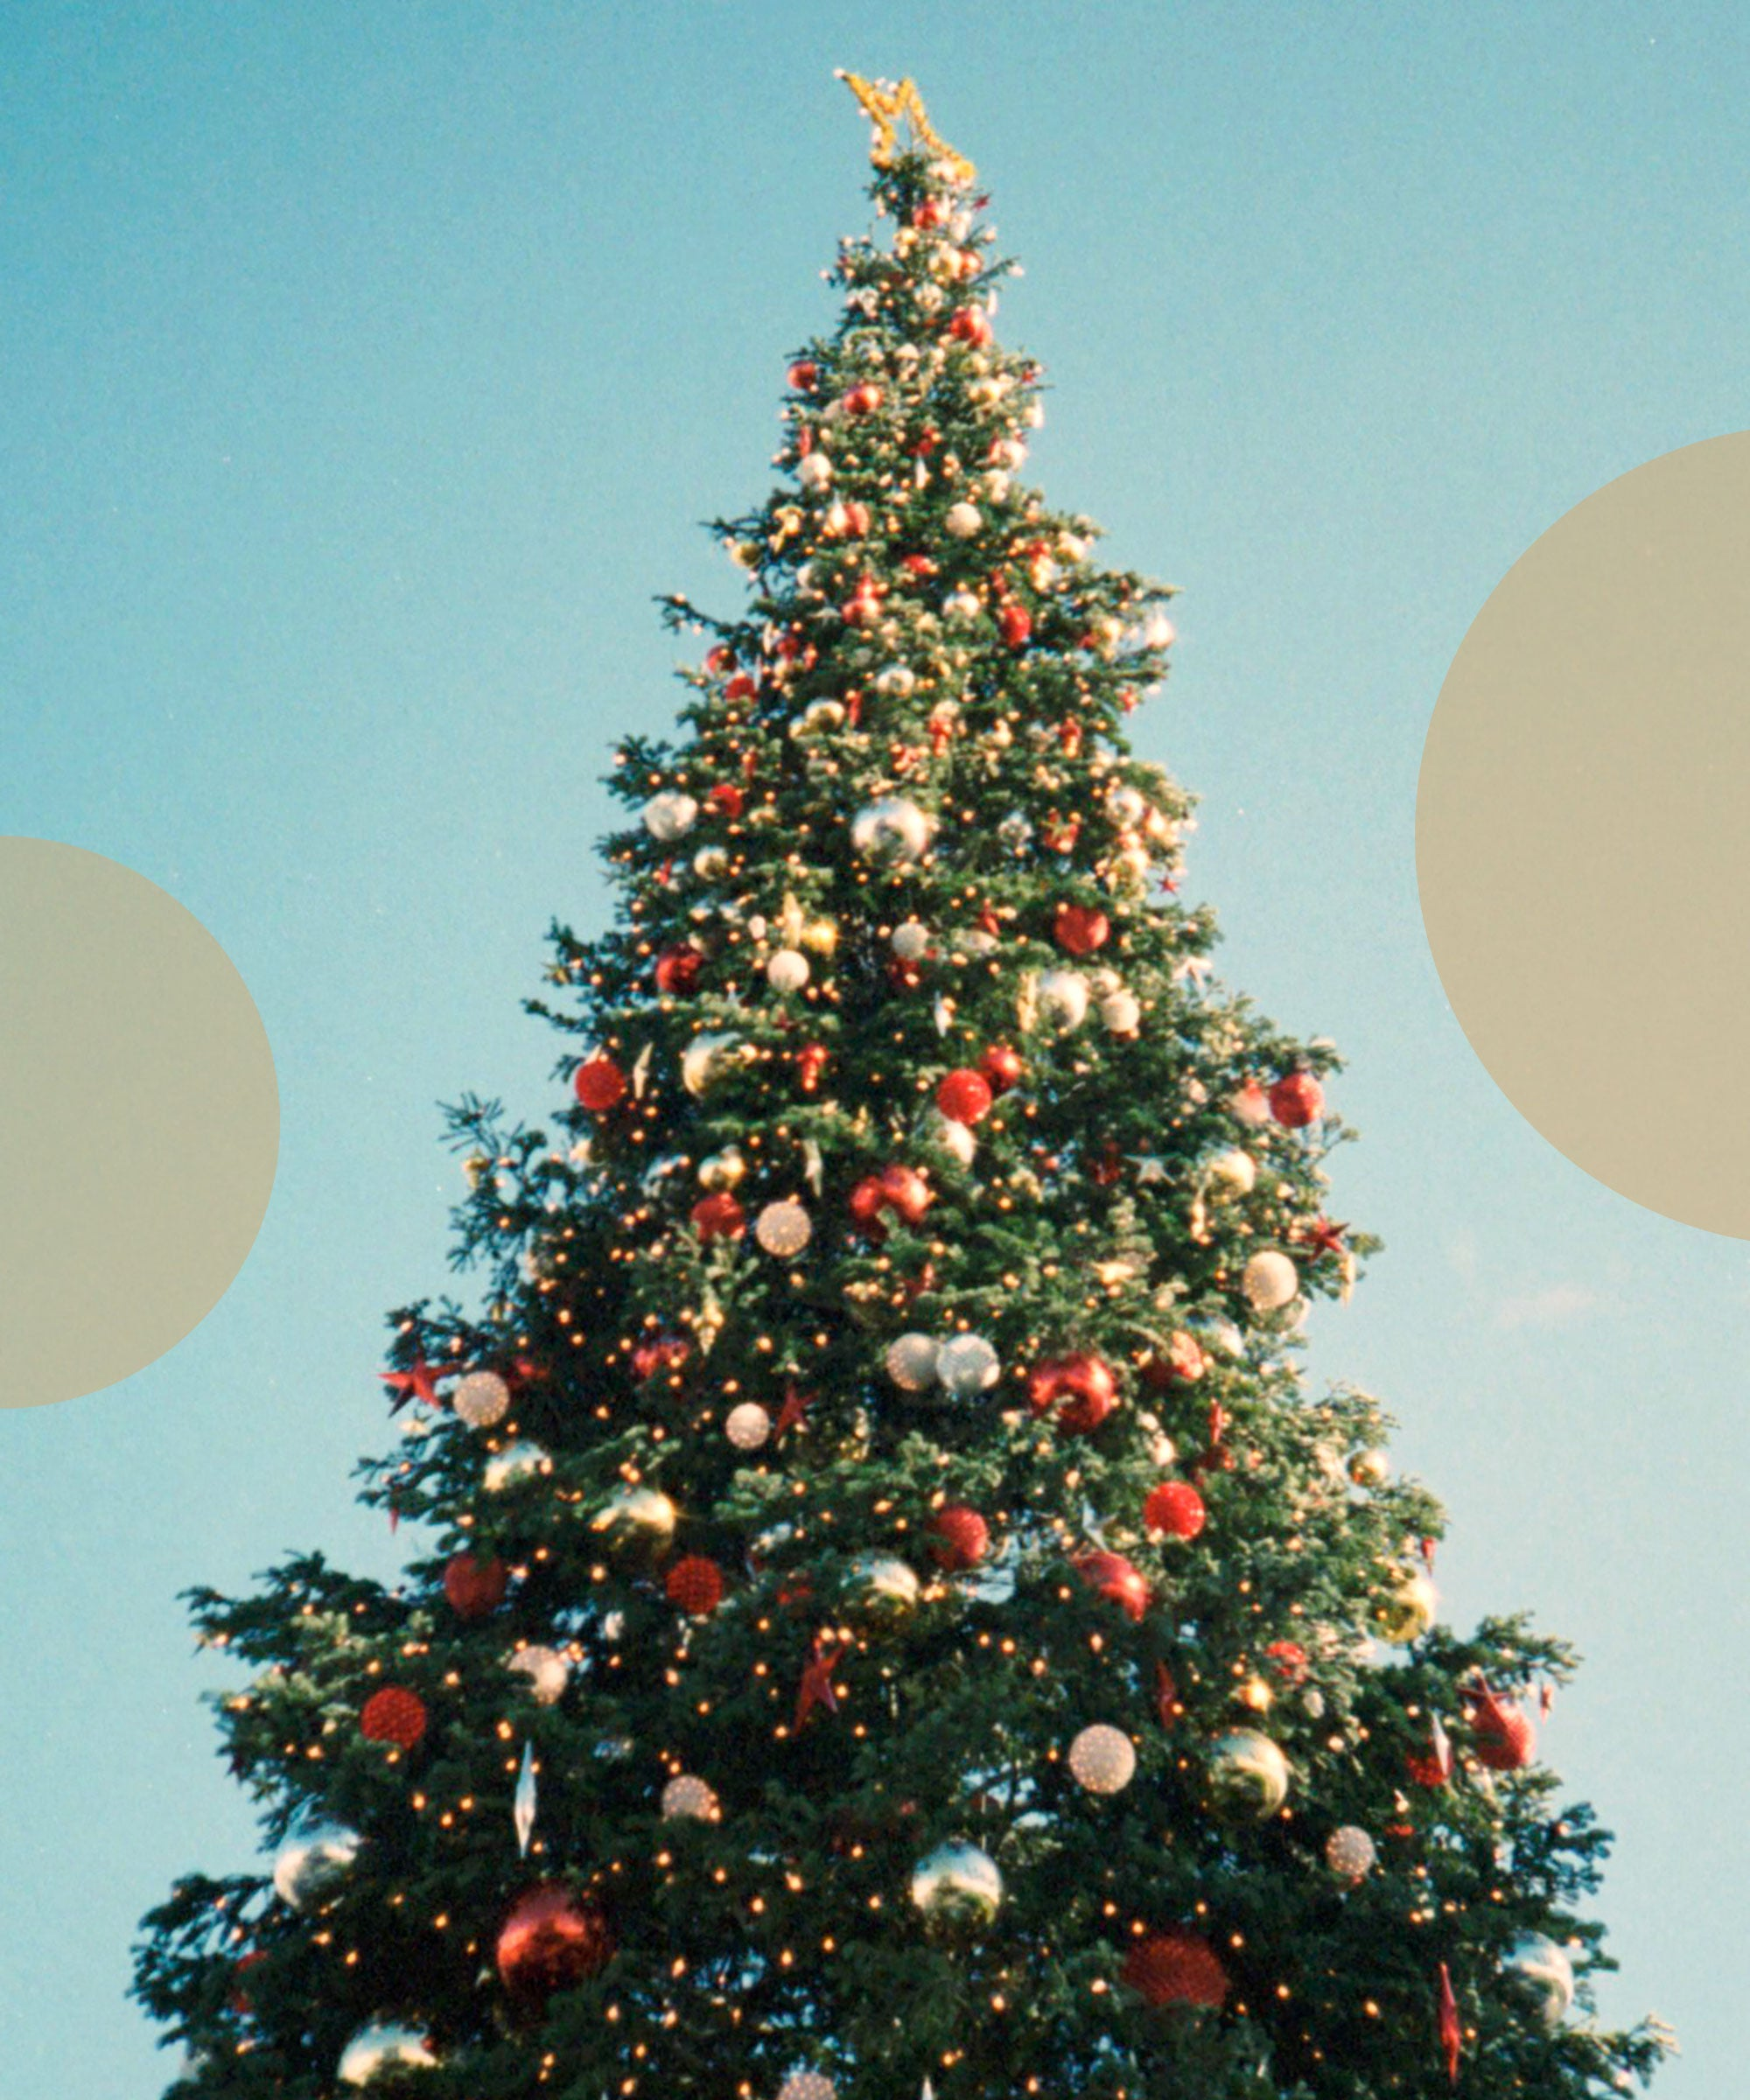 Christmas Tree Shortage 2019 Due To Climate Change